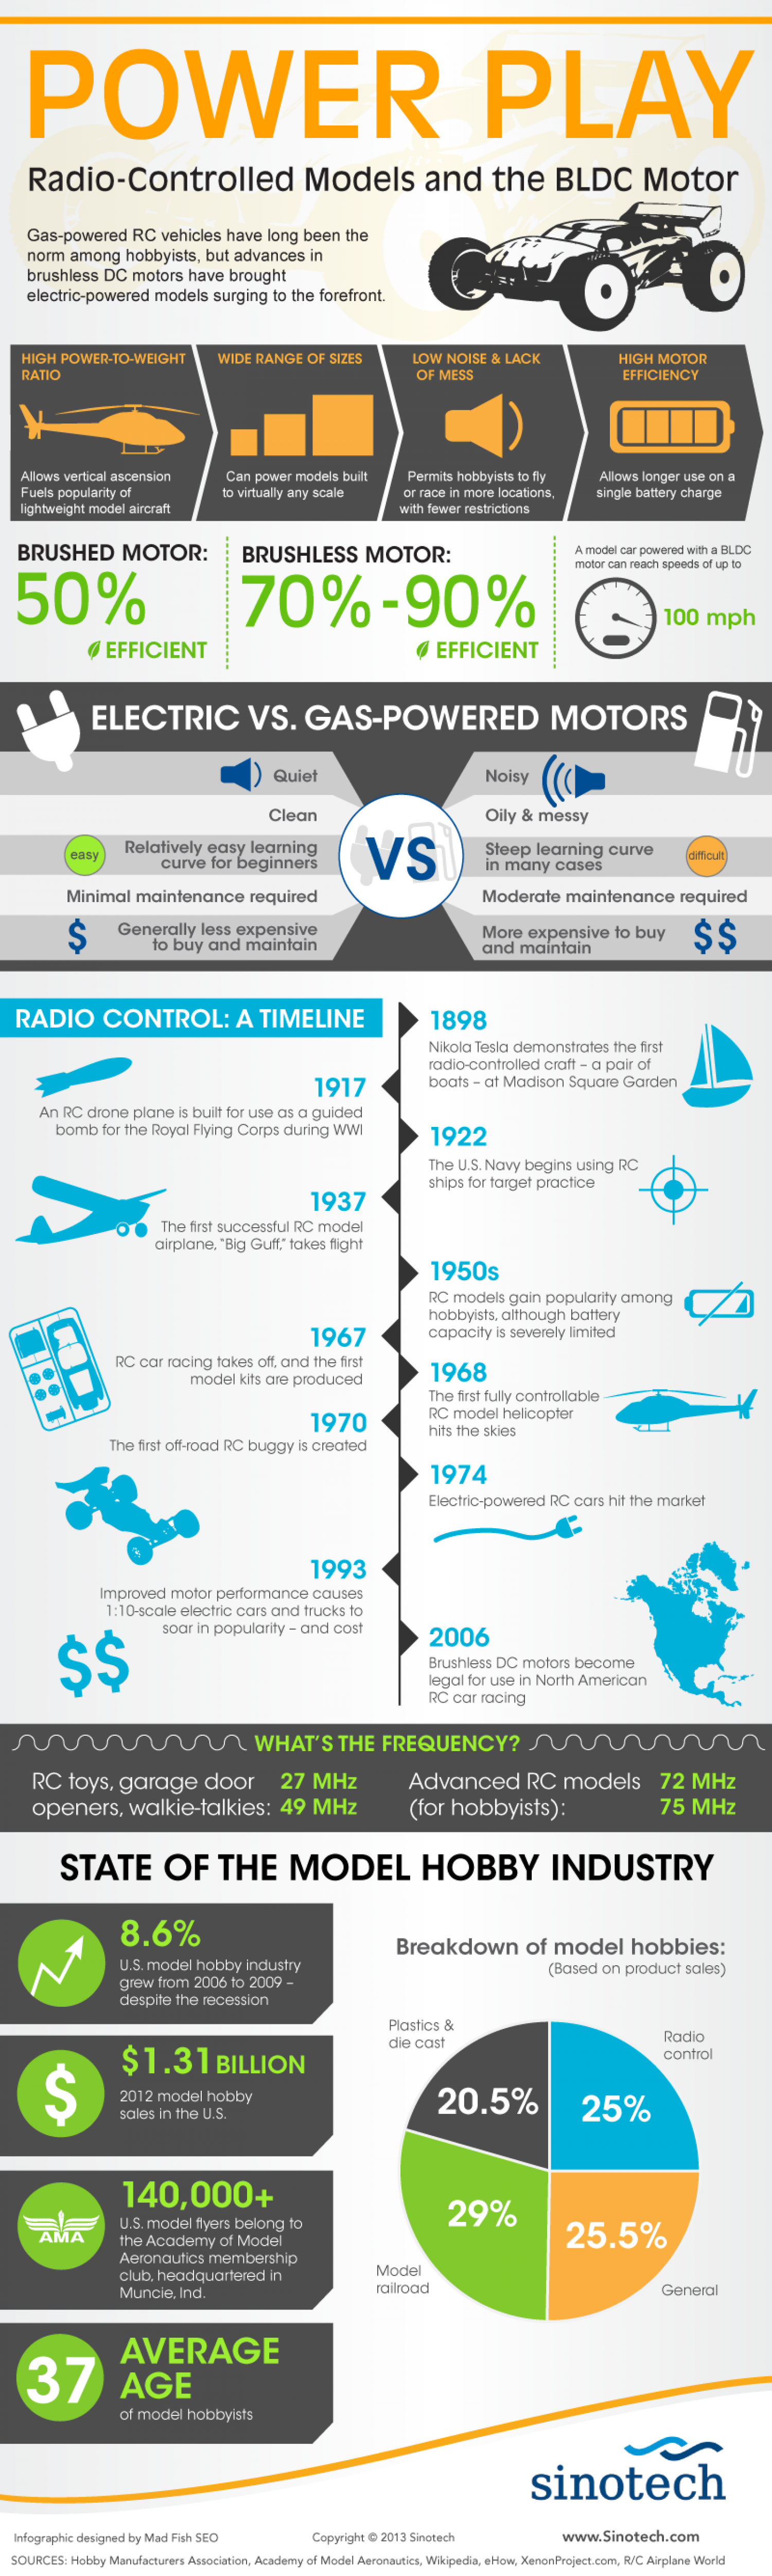 Power Play: Radio-Controlled Models and the BLDC Motor Infographic